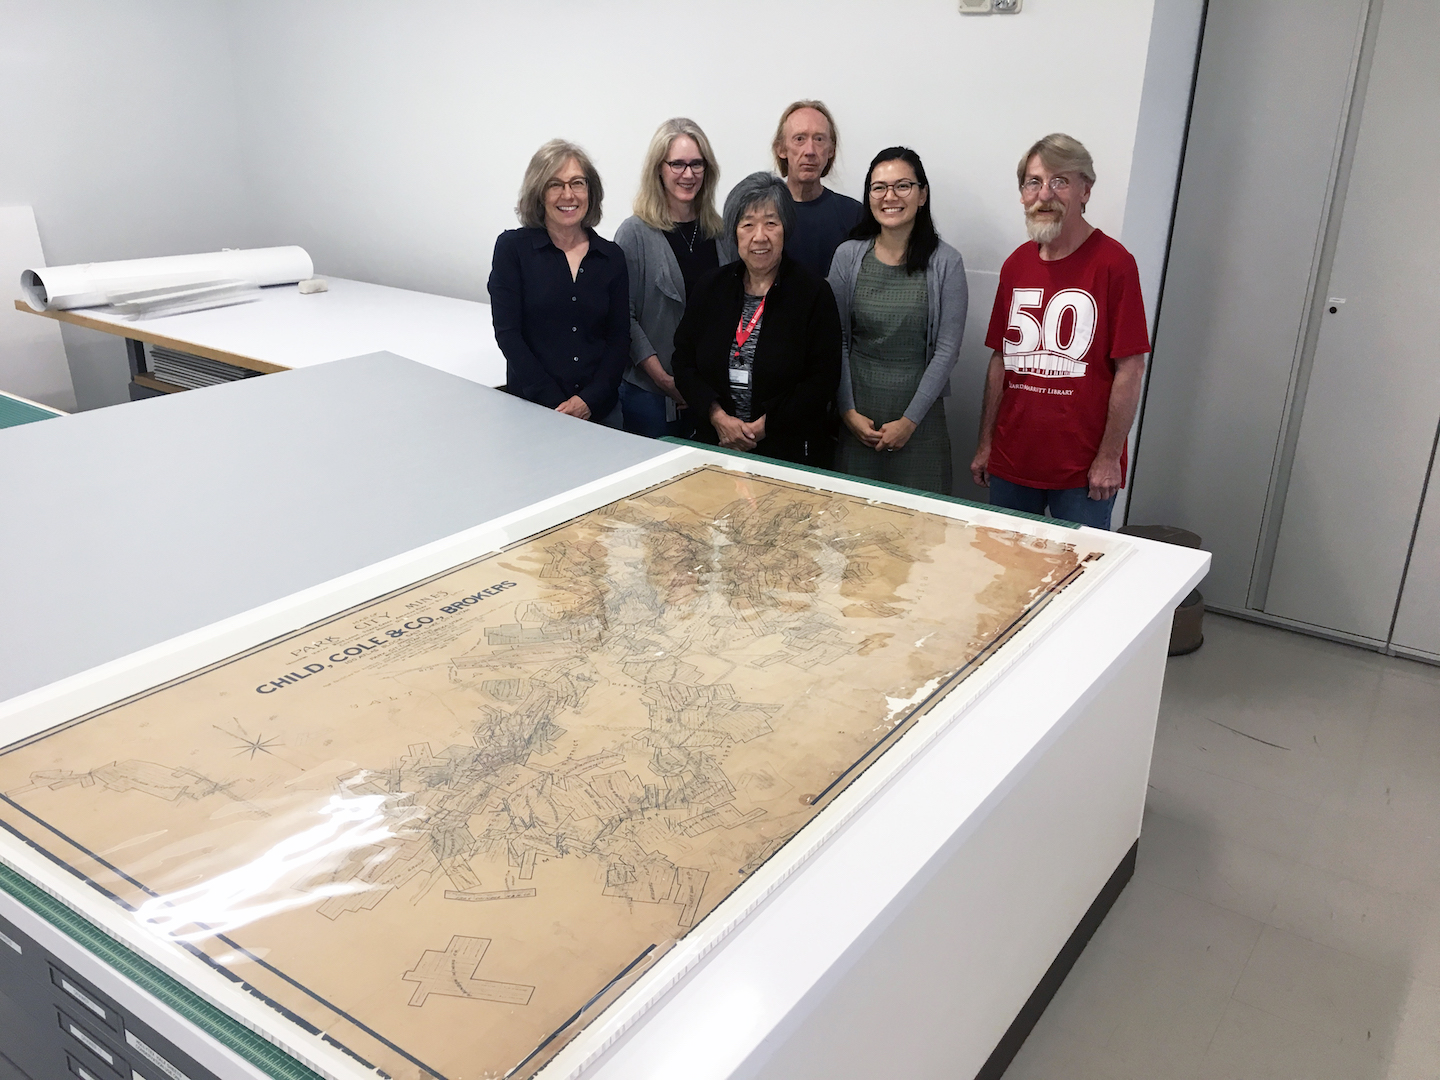 The map in its protective storage folder, and the Preservation team that conducted the treatment. From left: conservation technician volunteer Annabelle Shrieve, conservation technician Susan Schlotterbeck, book conservator Jeff Hunt, Conservator of works on paper Stacey Kelly, Conservation technician Frank Pester, and (front) Conservation Assistant Peggy Leo.